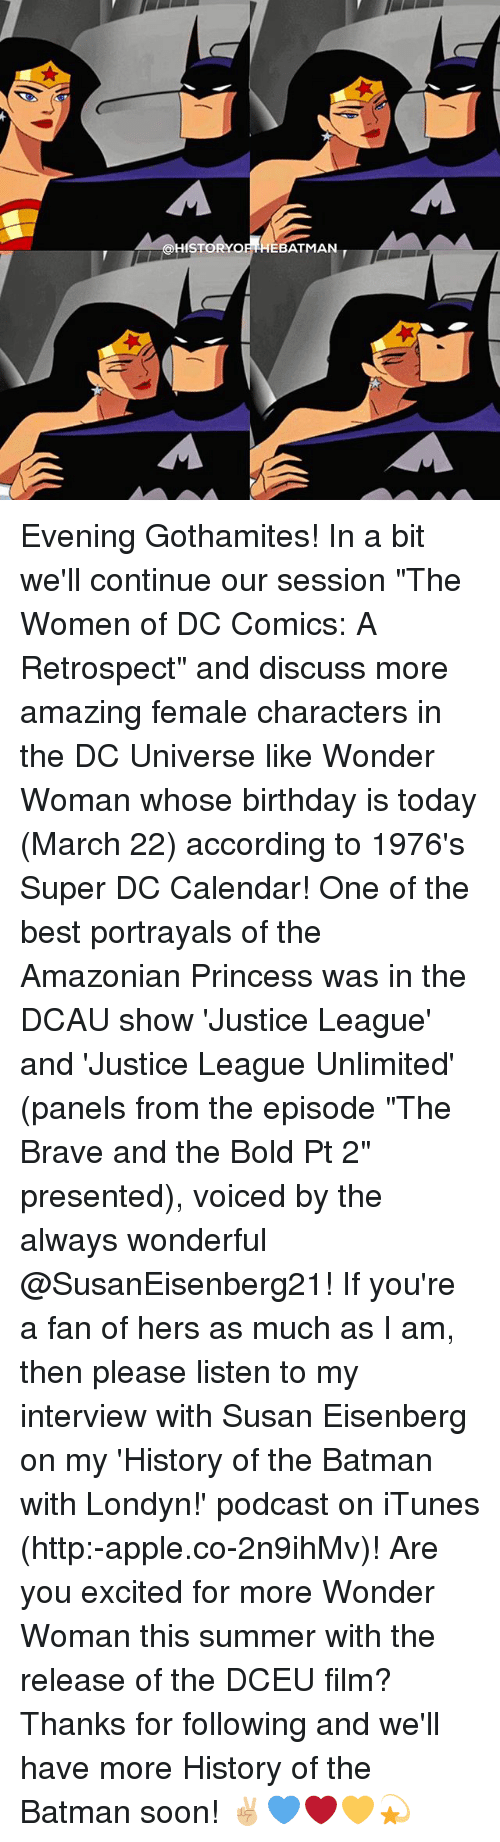 "discussion: ISDHISTORs  A  EBATMAN Evening Gothamites! In a bit we'll continue our session ""The Women of DC Comics: A Retrospect"" and discuss more amazing female characters in the DC Universe like Wonder Woman whose birthday is today (March 22) according to 1976's Super DC Calendar! One of the best portrayals of the Amazonian Princess was in the DCAU show 'Justice League' and 'Justice League Unlimited' (panels from the episode ""The Brave and the Bold Pt 2"" presented), voiced by the always wonderful @SusanEisenberg21! If you're a fan of hers as much as I am, then please listen to my interview with Susan Eisenberg on my 'History of the Batman with Londyn!' podcast on iTunes (http:-apple.co-2n9ihMv)! Are you excited for more Wonder Woman this summer with the release of the DCEU film? Thanks for following and we'll have more History of the Batman soon! ✌🏼💙❤️💛💫"